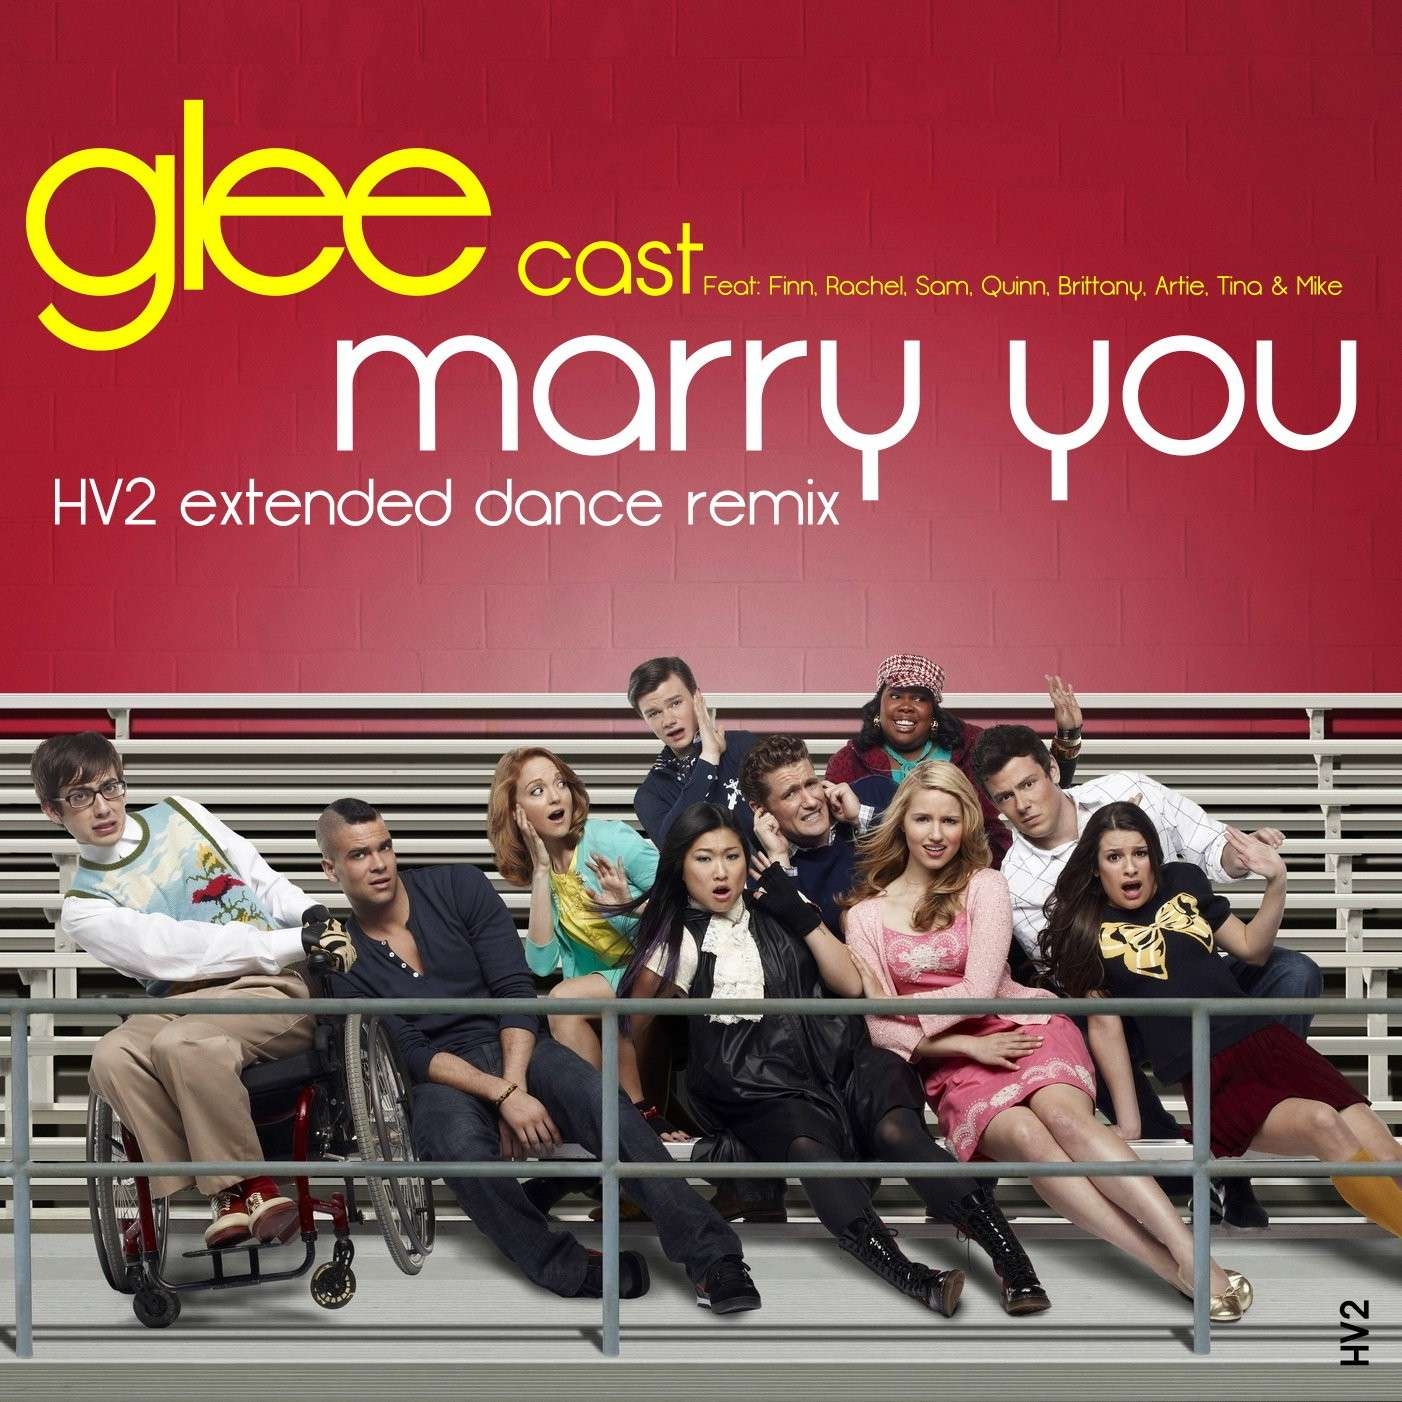 glee cast mary you remix HV2 remix bruno mars mary you xtatic